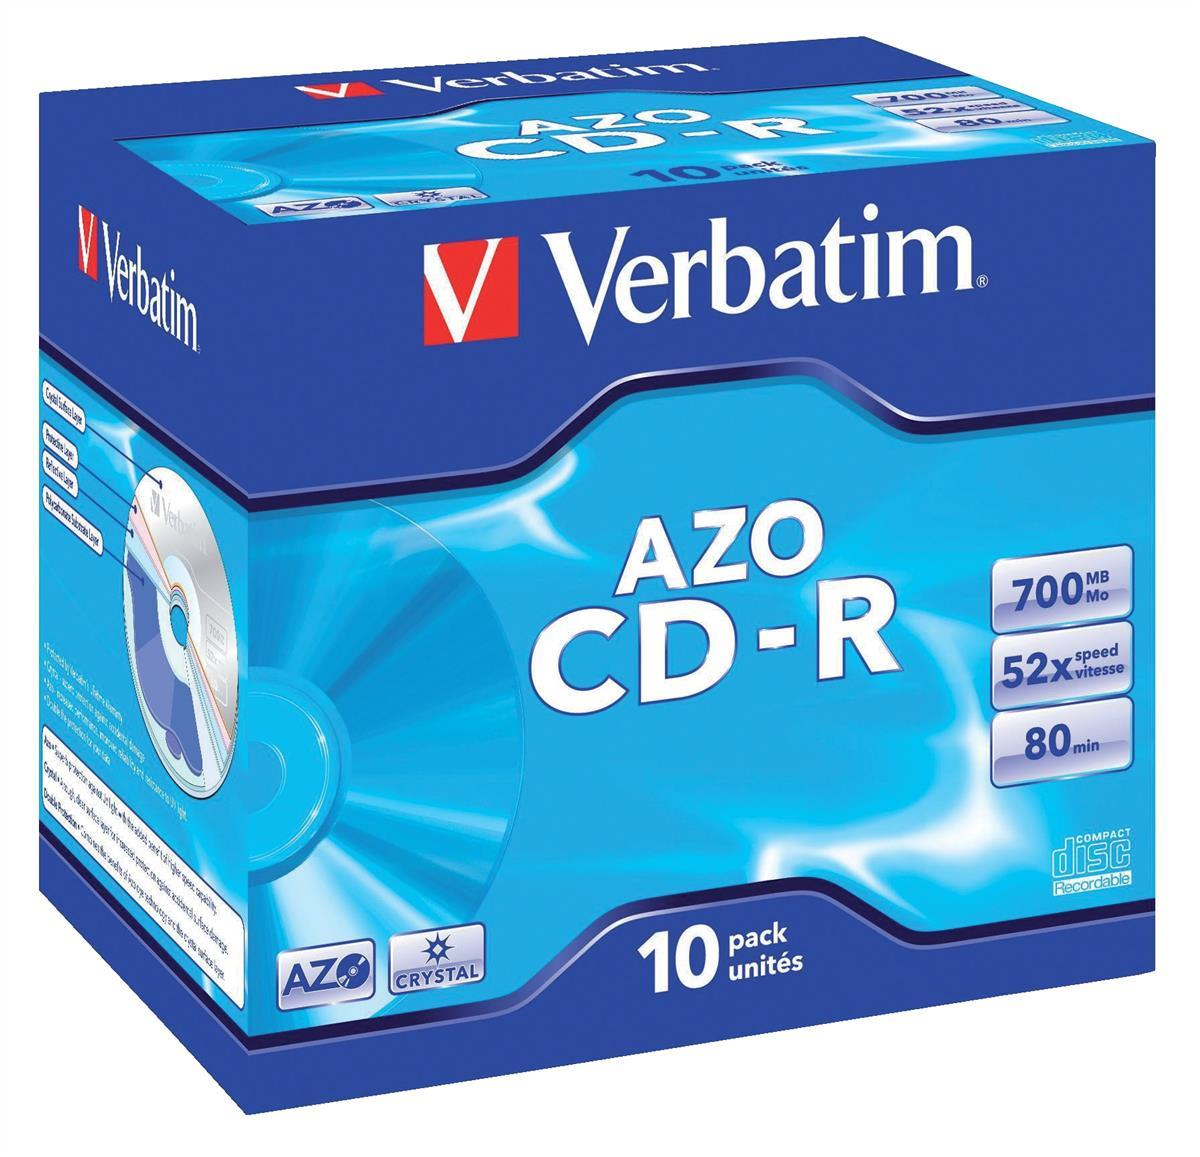 Image for Verbatim CD-R Recordable Disk Write-once Cased 52x Speed 80 Min 700Mb Ref 43327 [Pack 10]